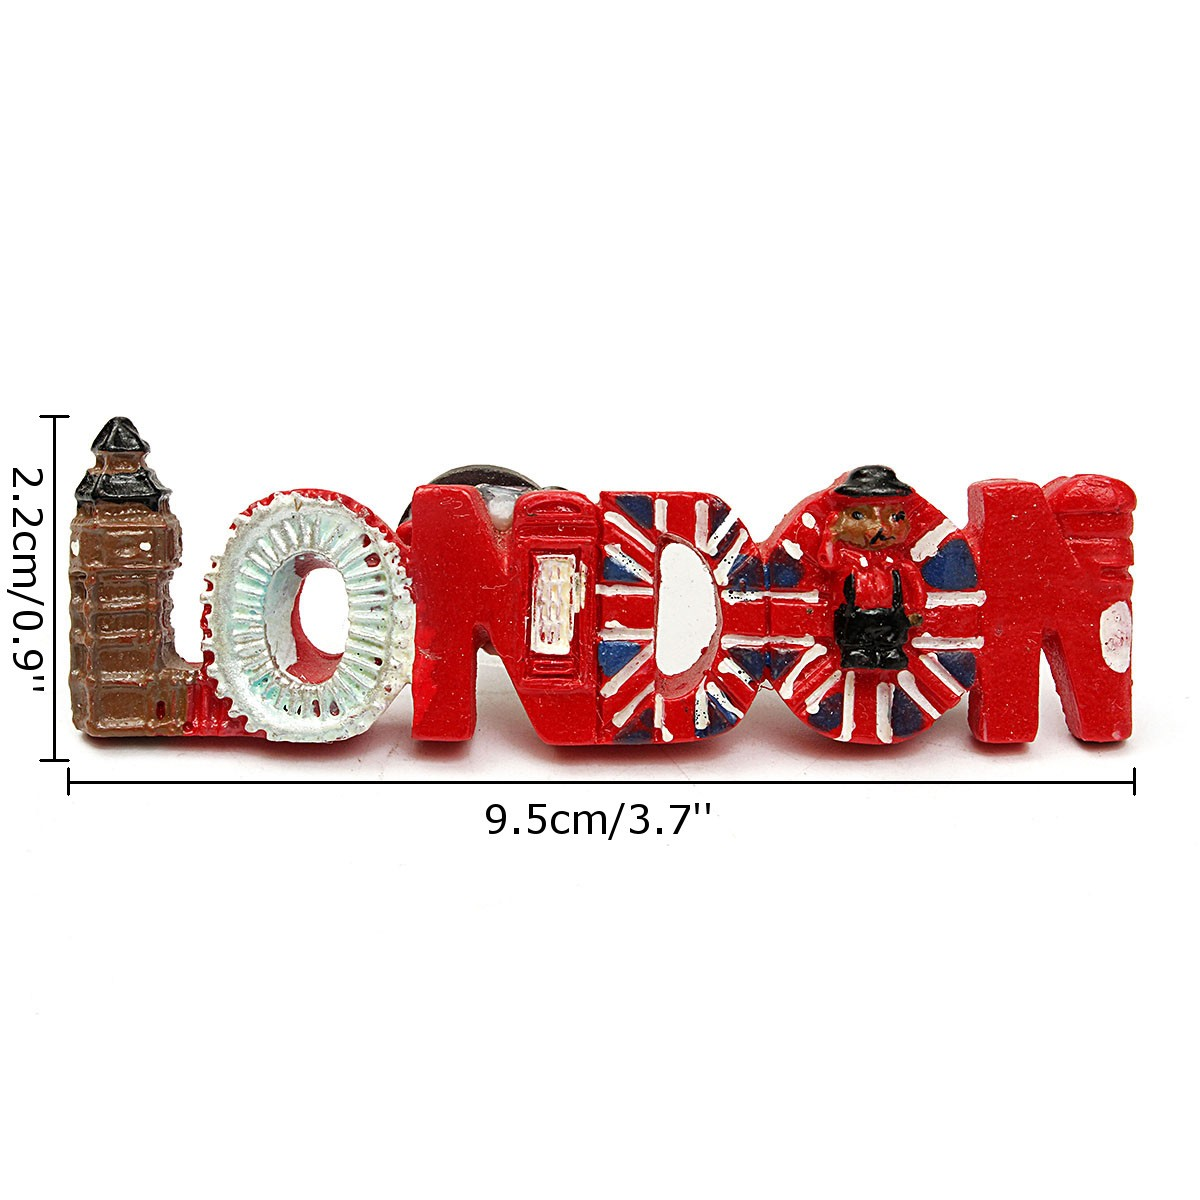 3D Resin Tourist Travel Souvenir Craft Fridge Magnet United Kingdom UK London - Photo: 5